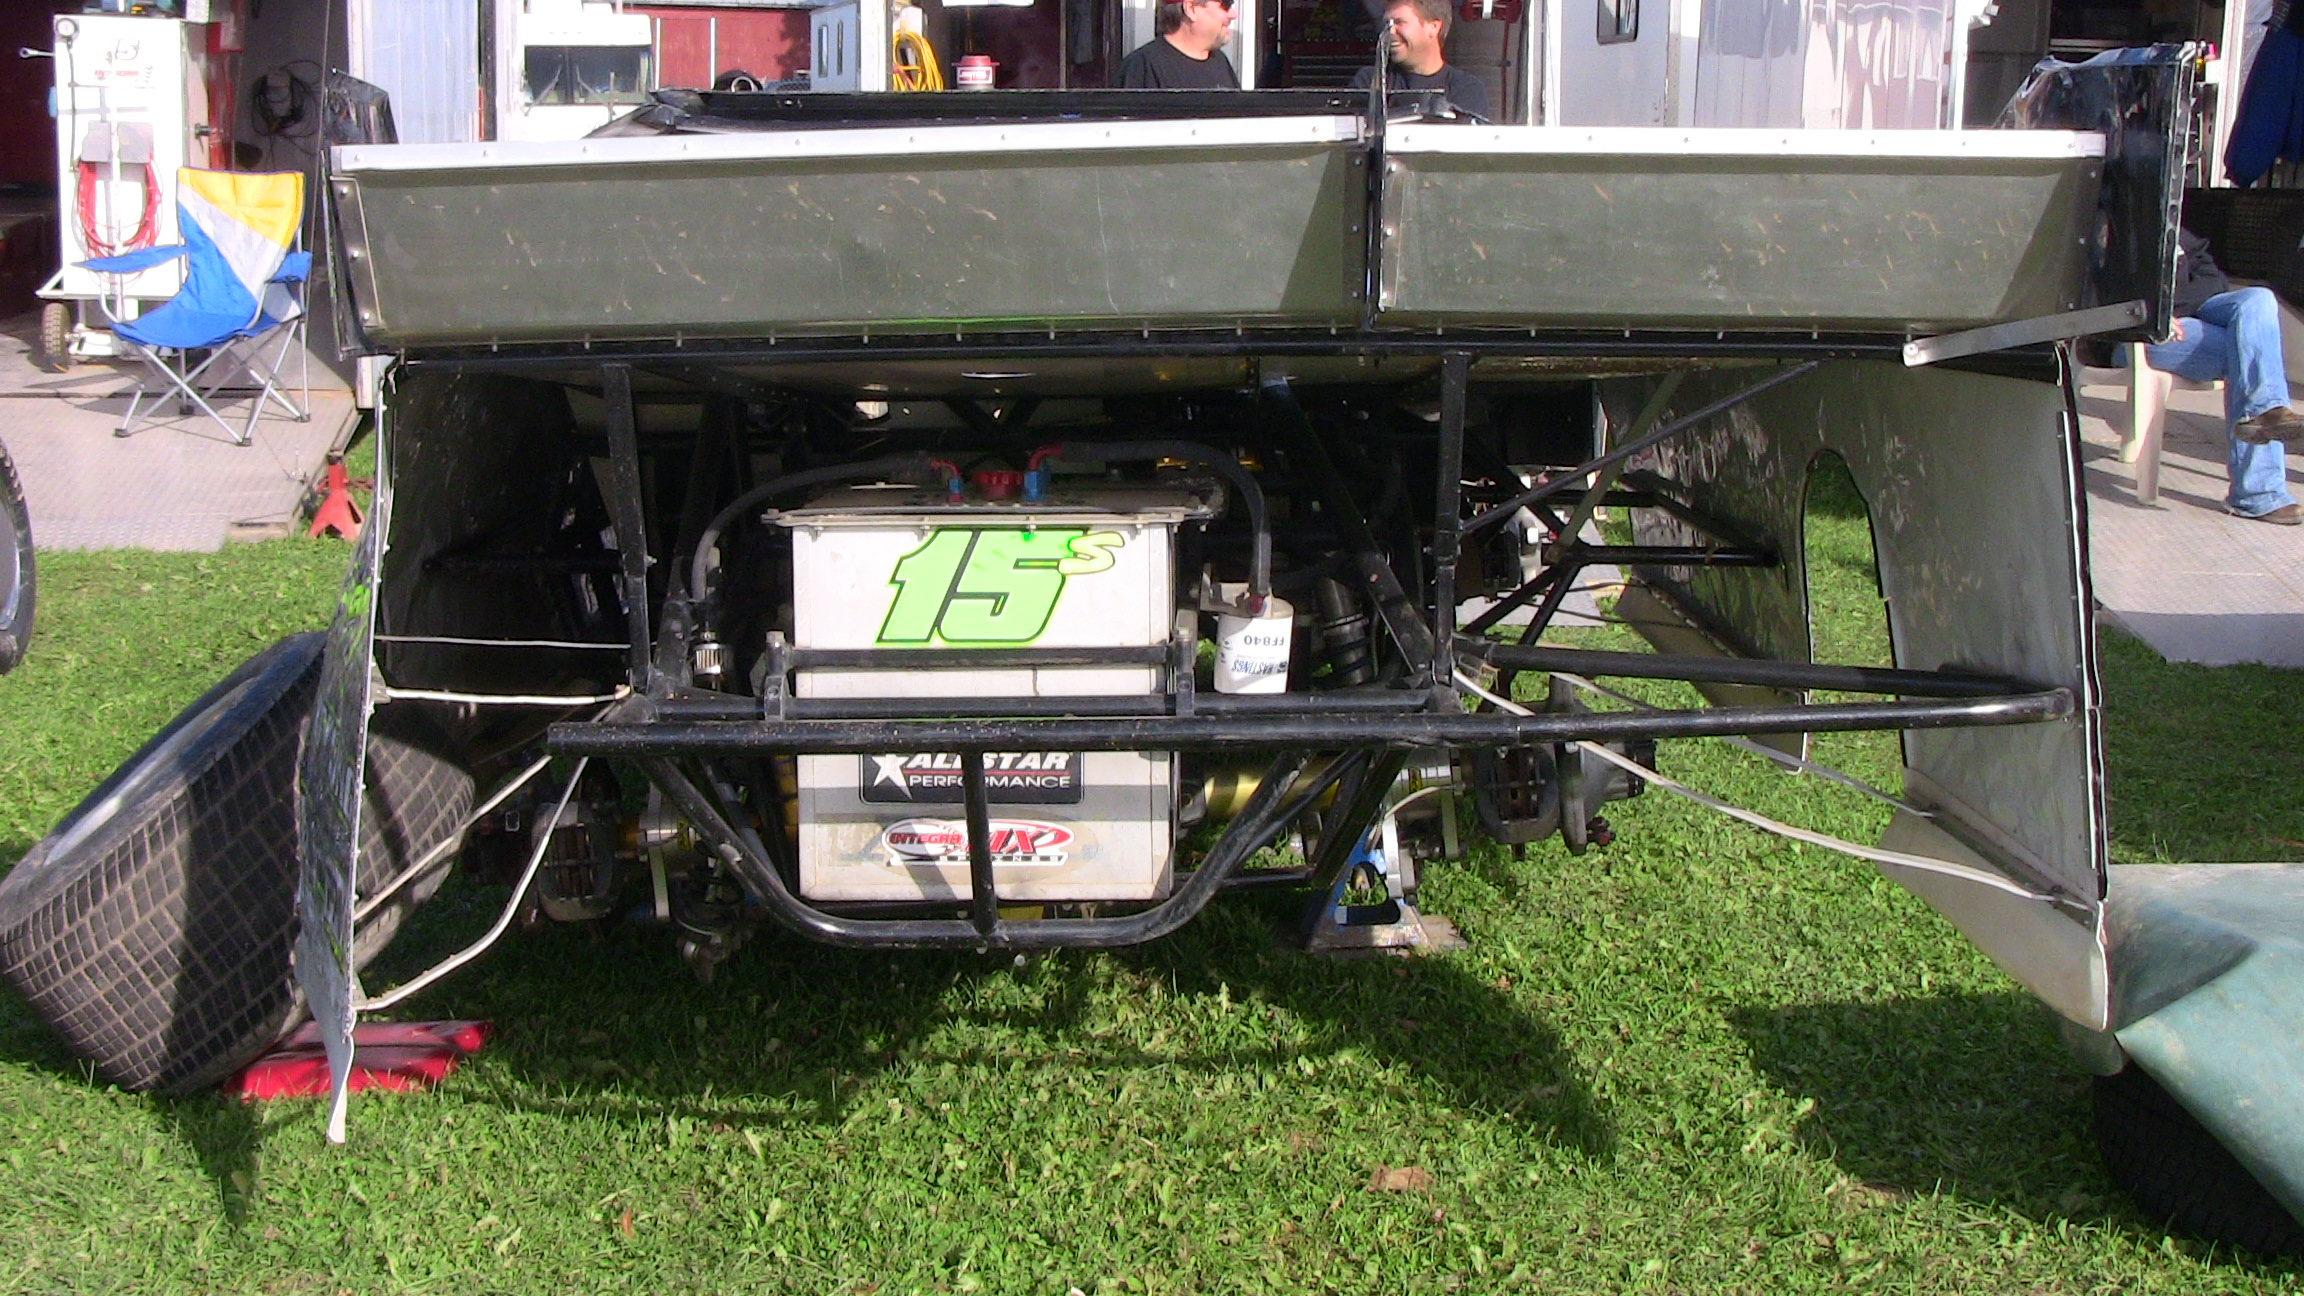 left rear axle weight on a dirt track race car hogan technologies rh hogantechnologies com Basic Wiring Race Car Race Car Diagram